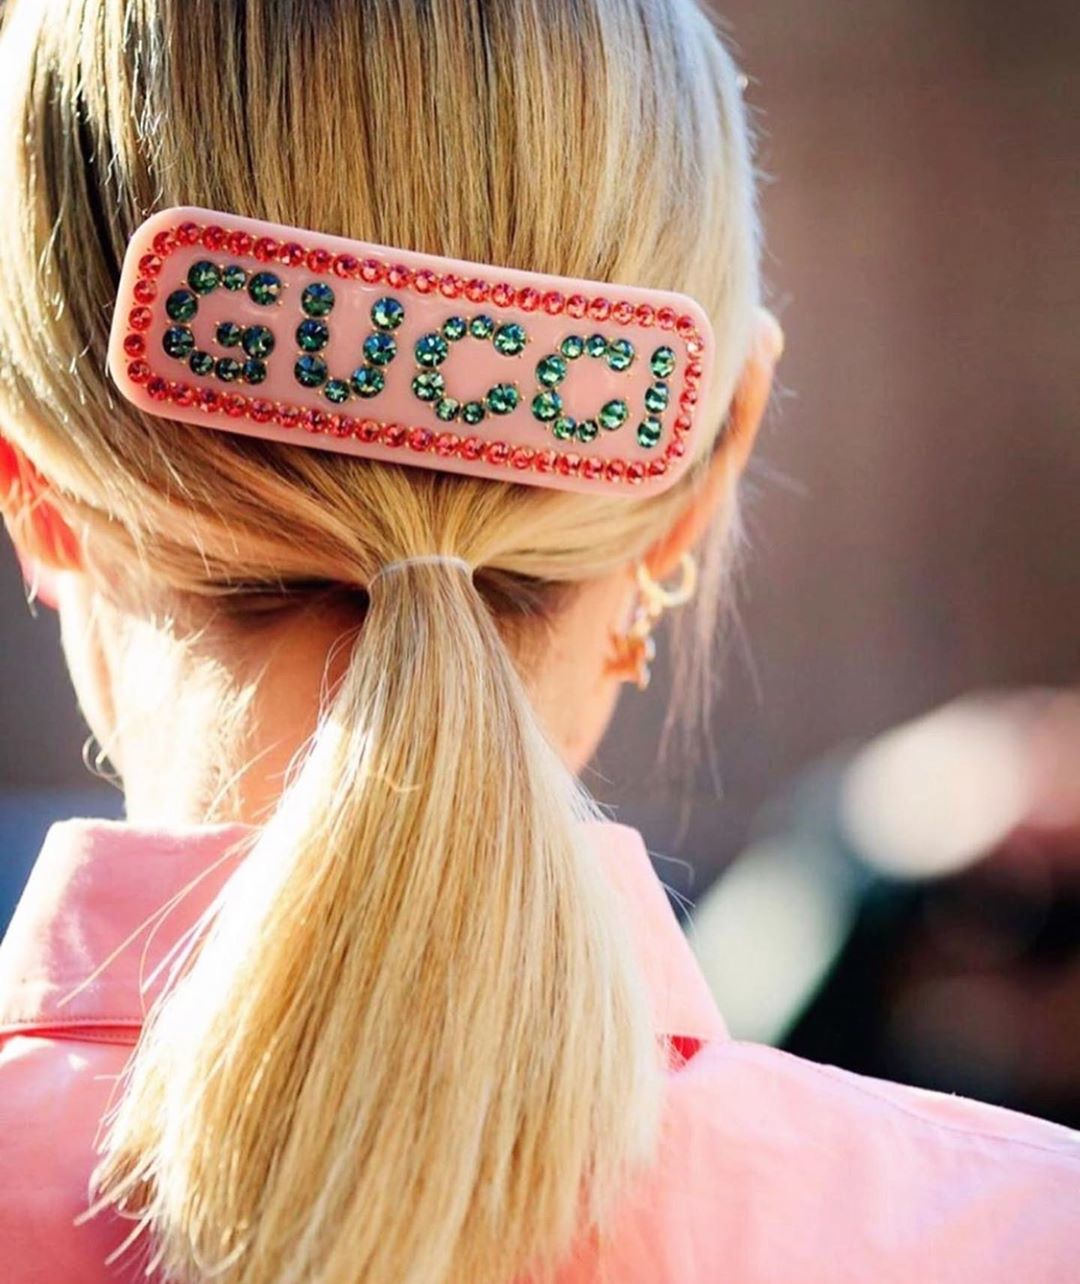 Gucci hairclip